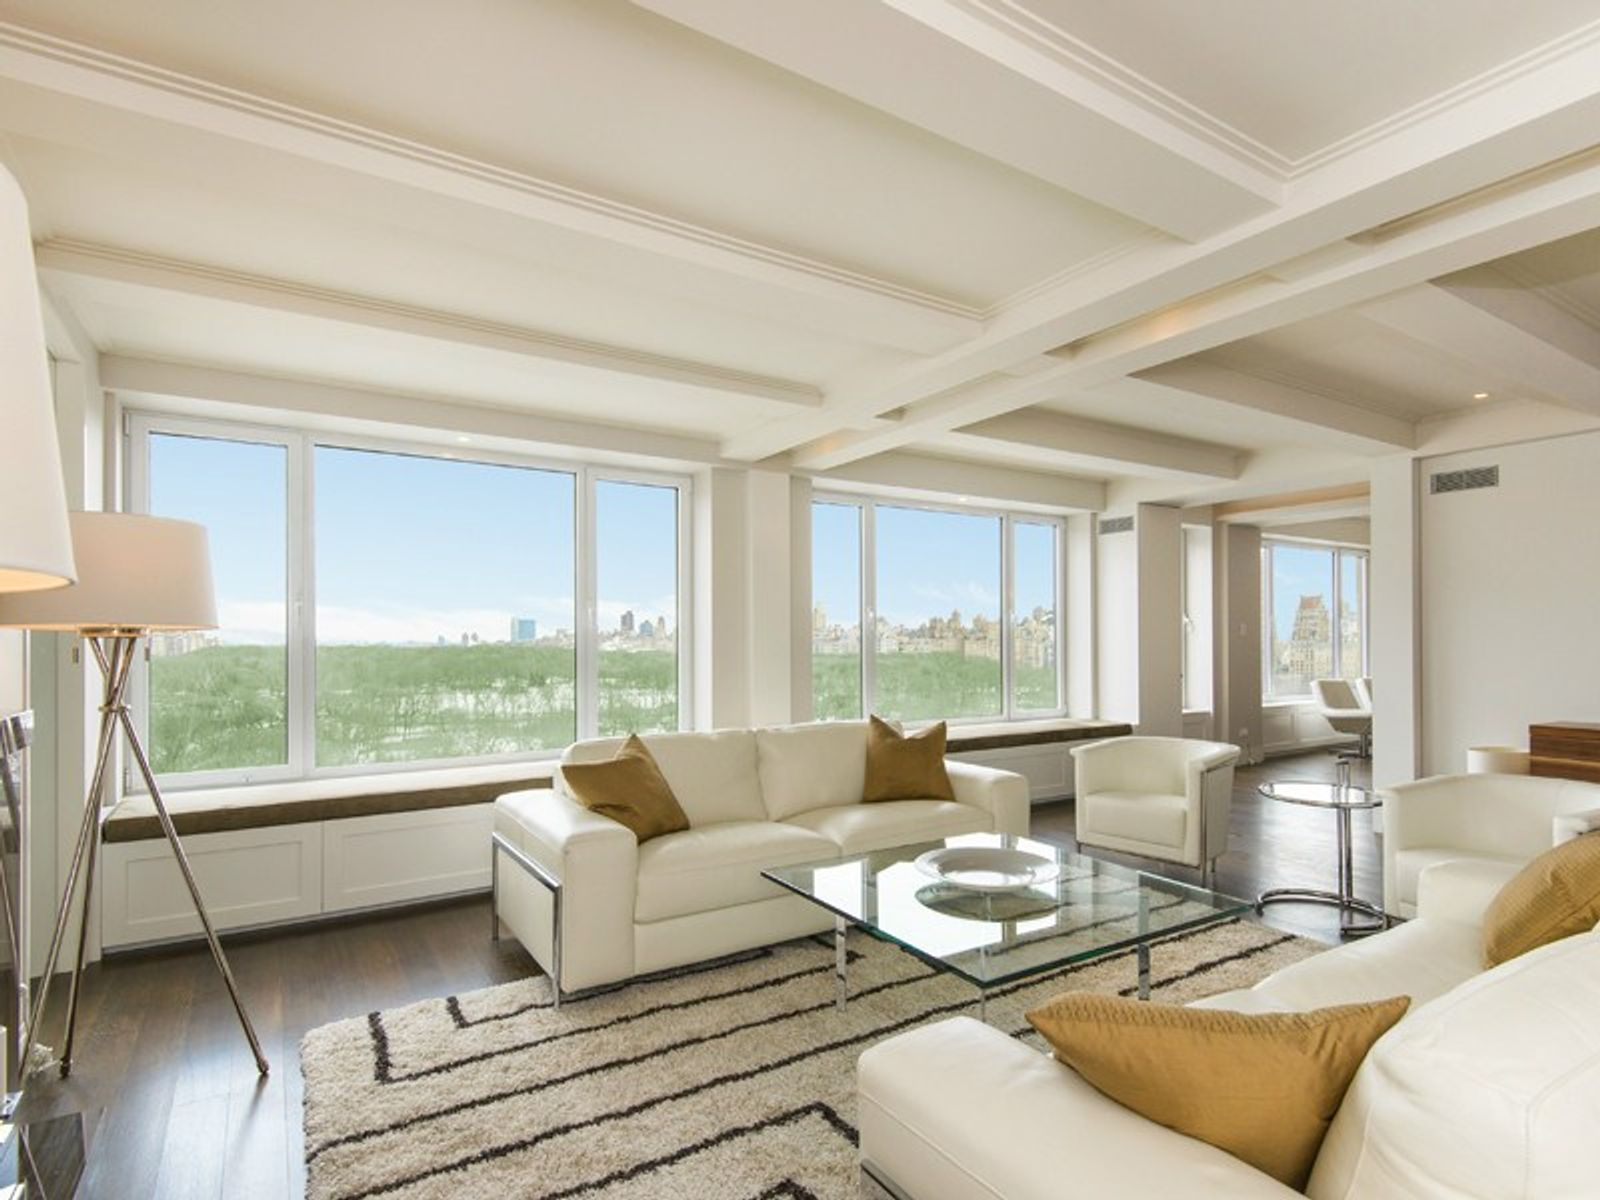 230 Central Park South, New York NY Condop - New York City Real Estate